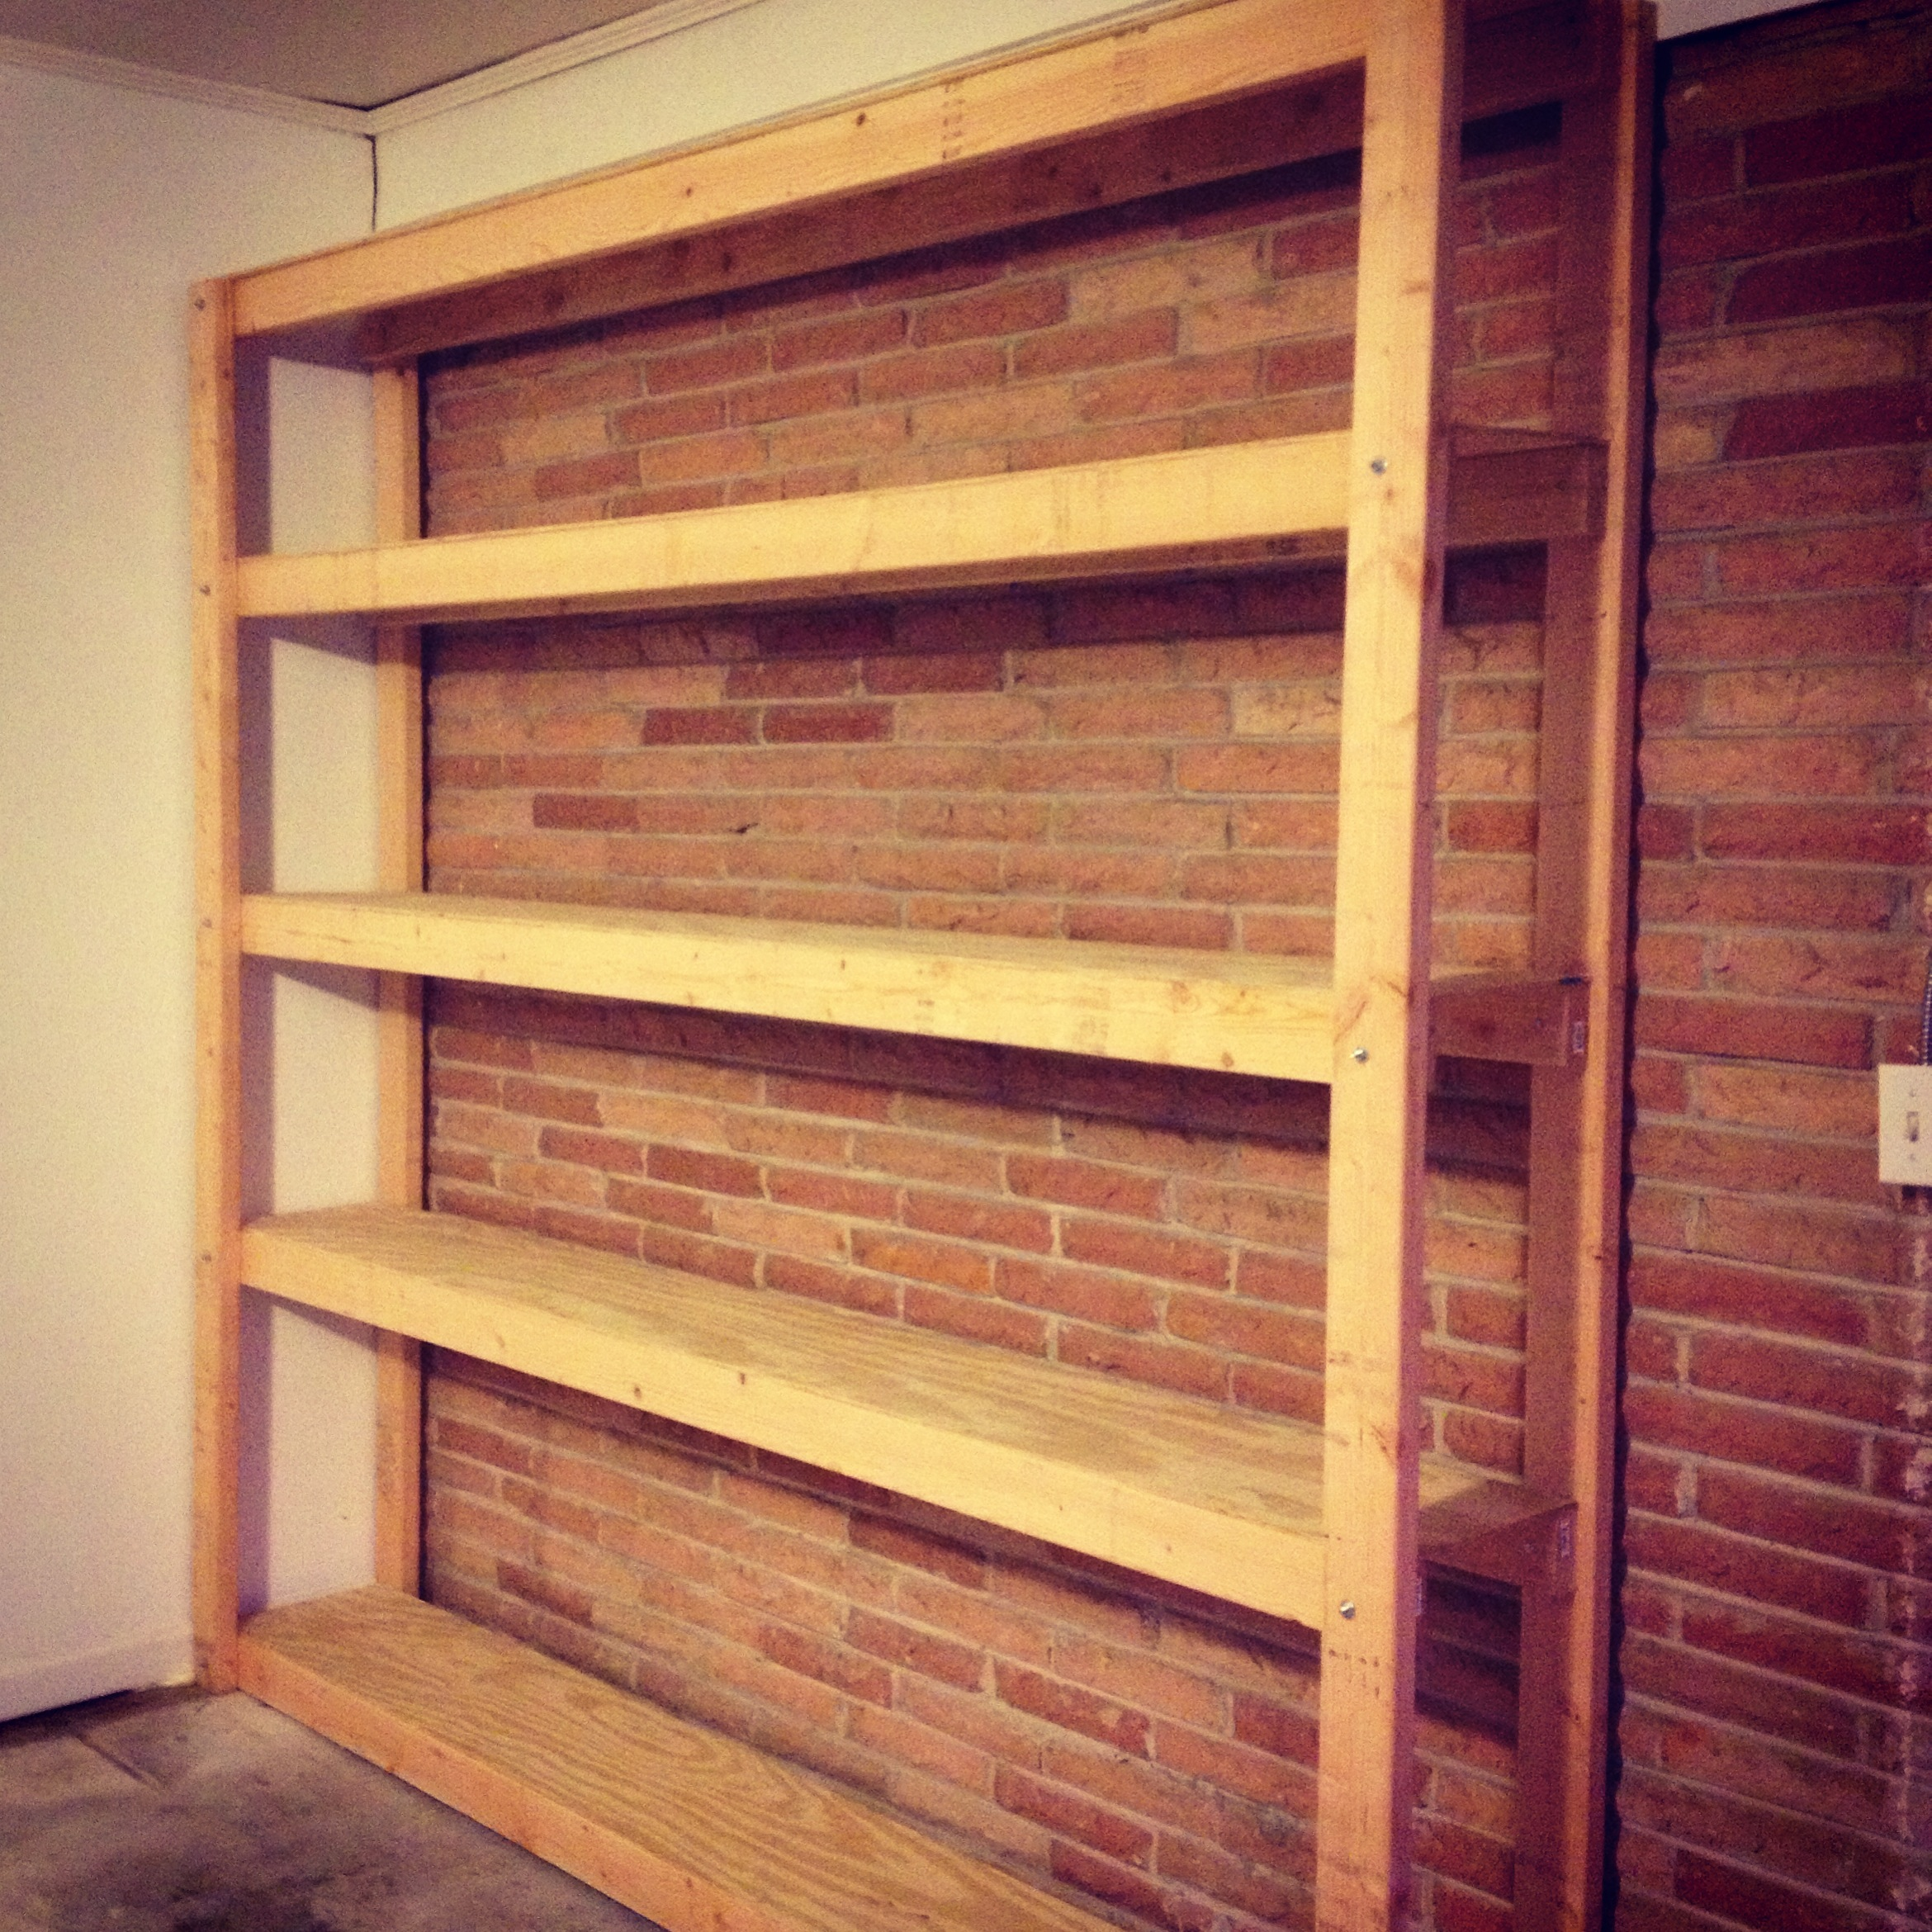 diy garage storage shelves how to build shelves for your garage for pennies 14894